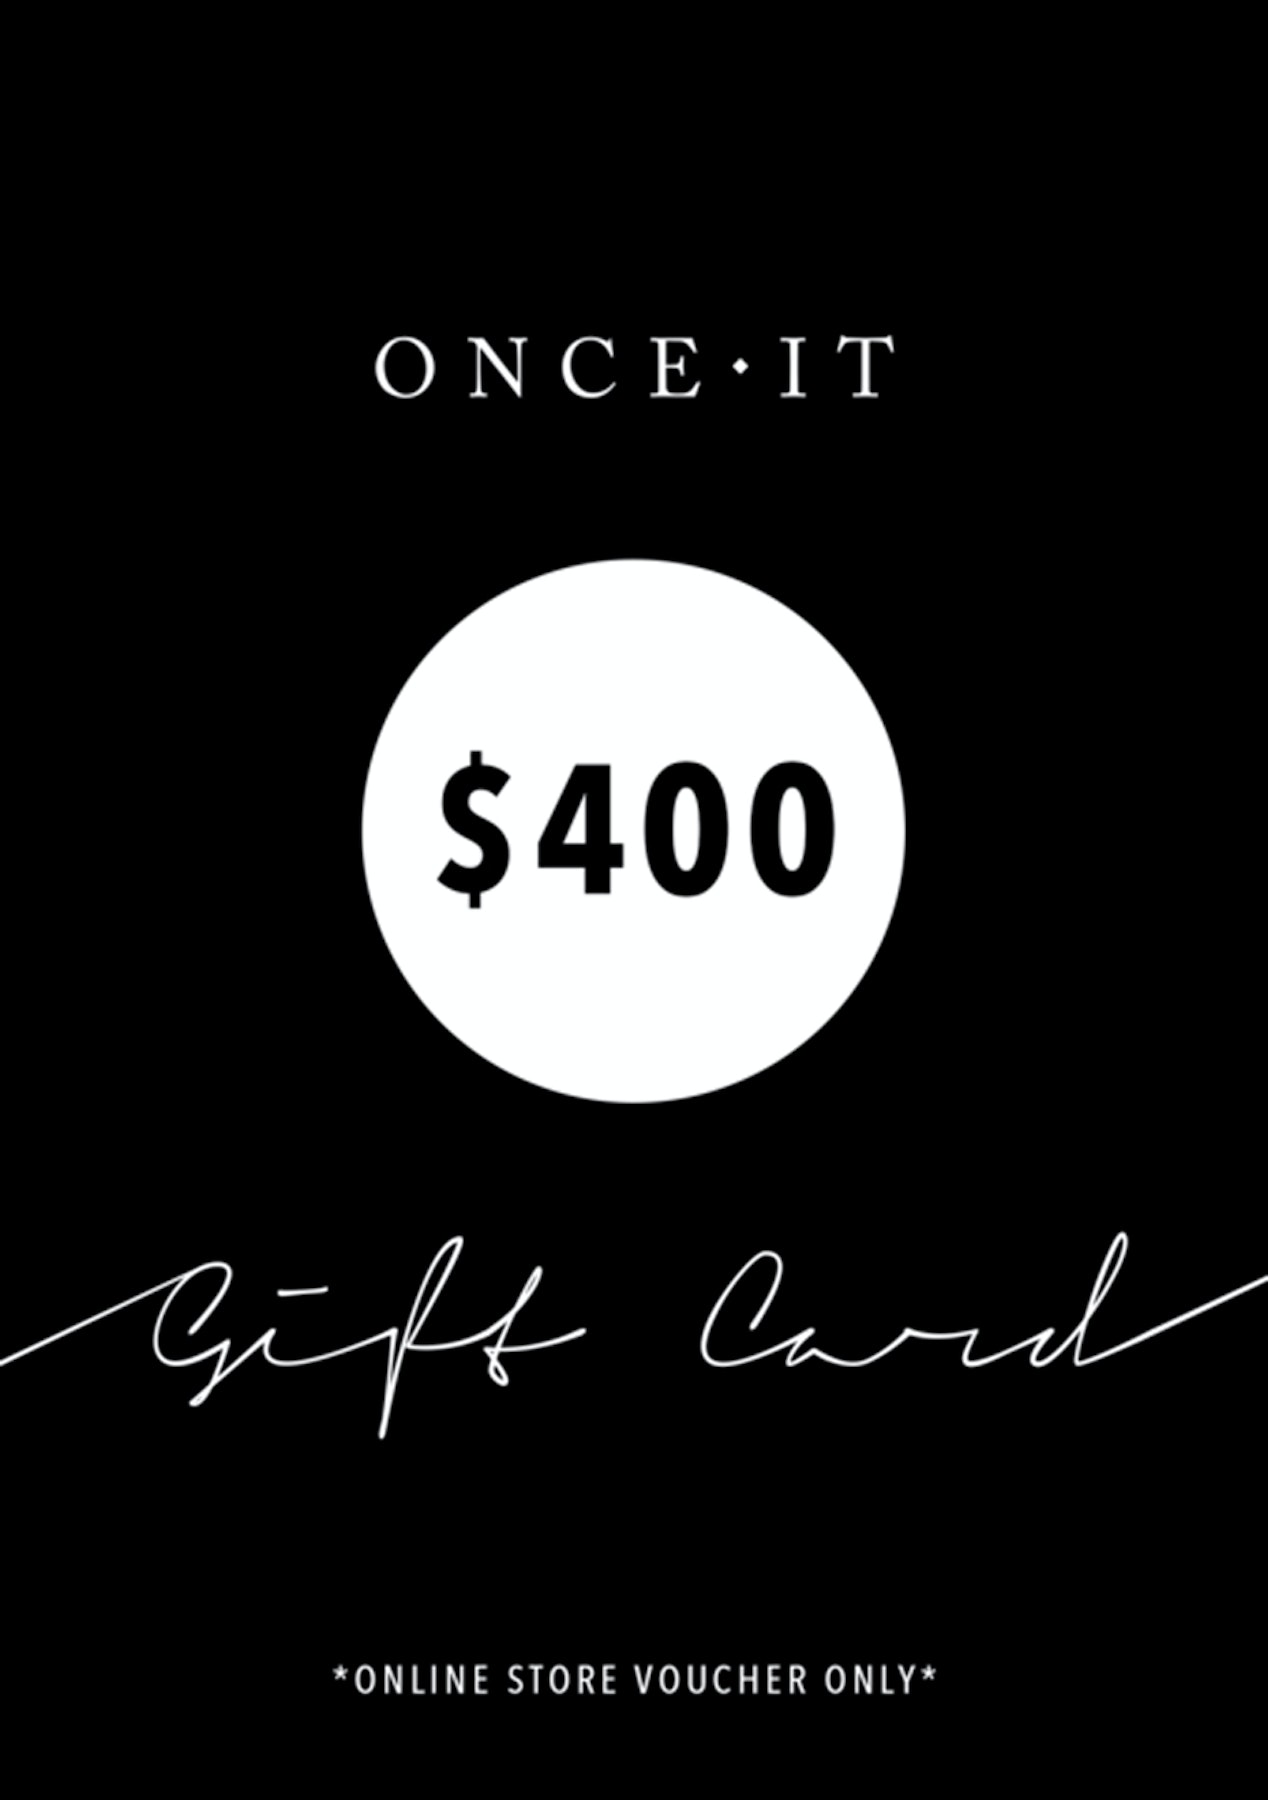 Onceit $400 Digital Gift Card